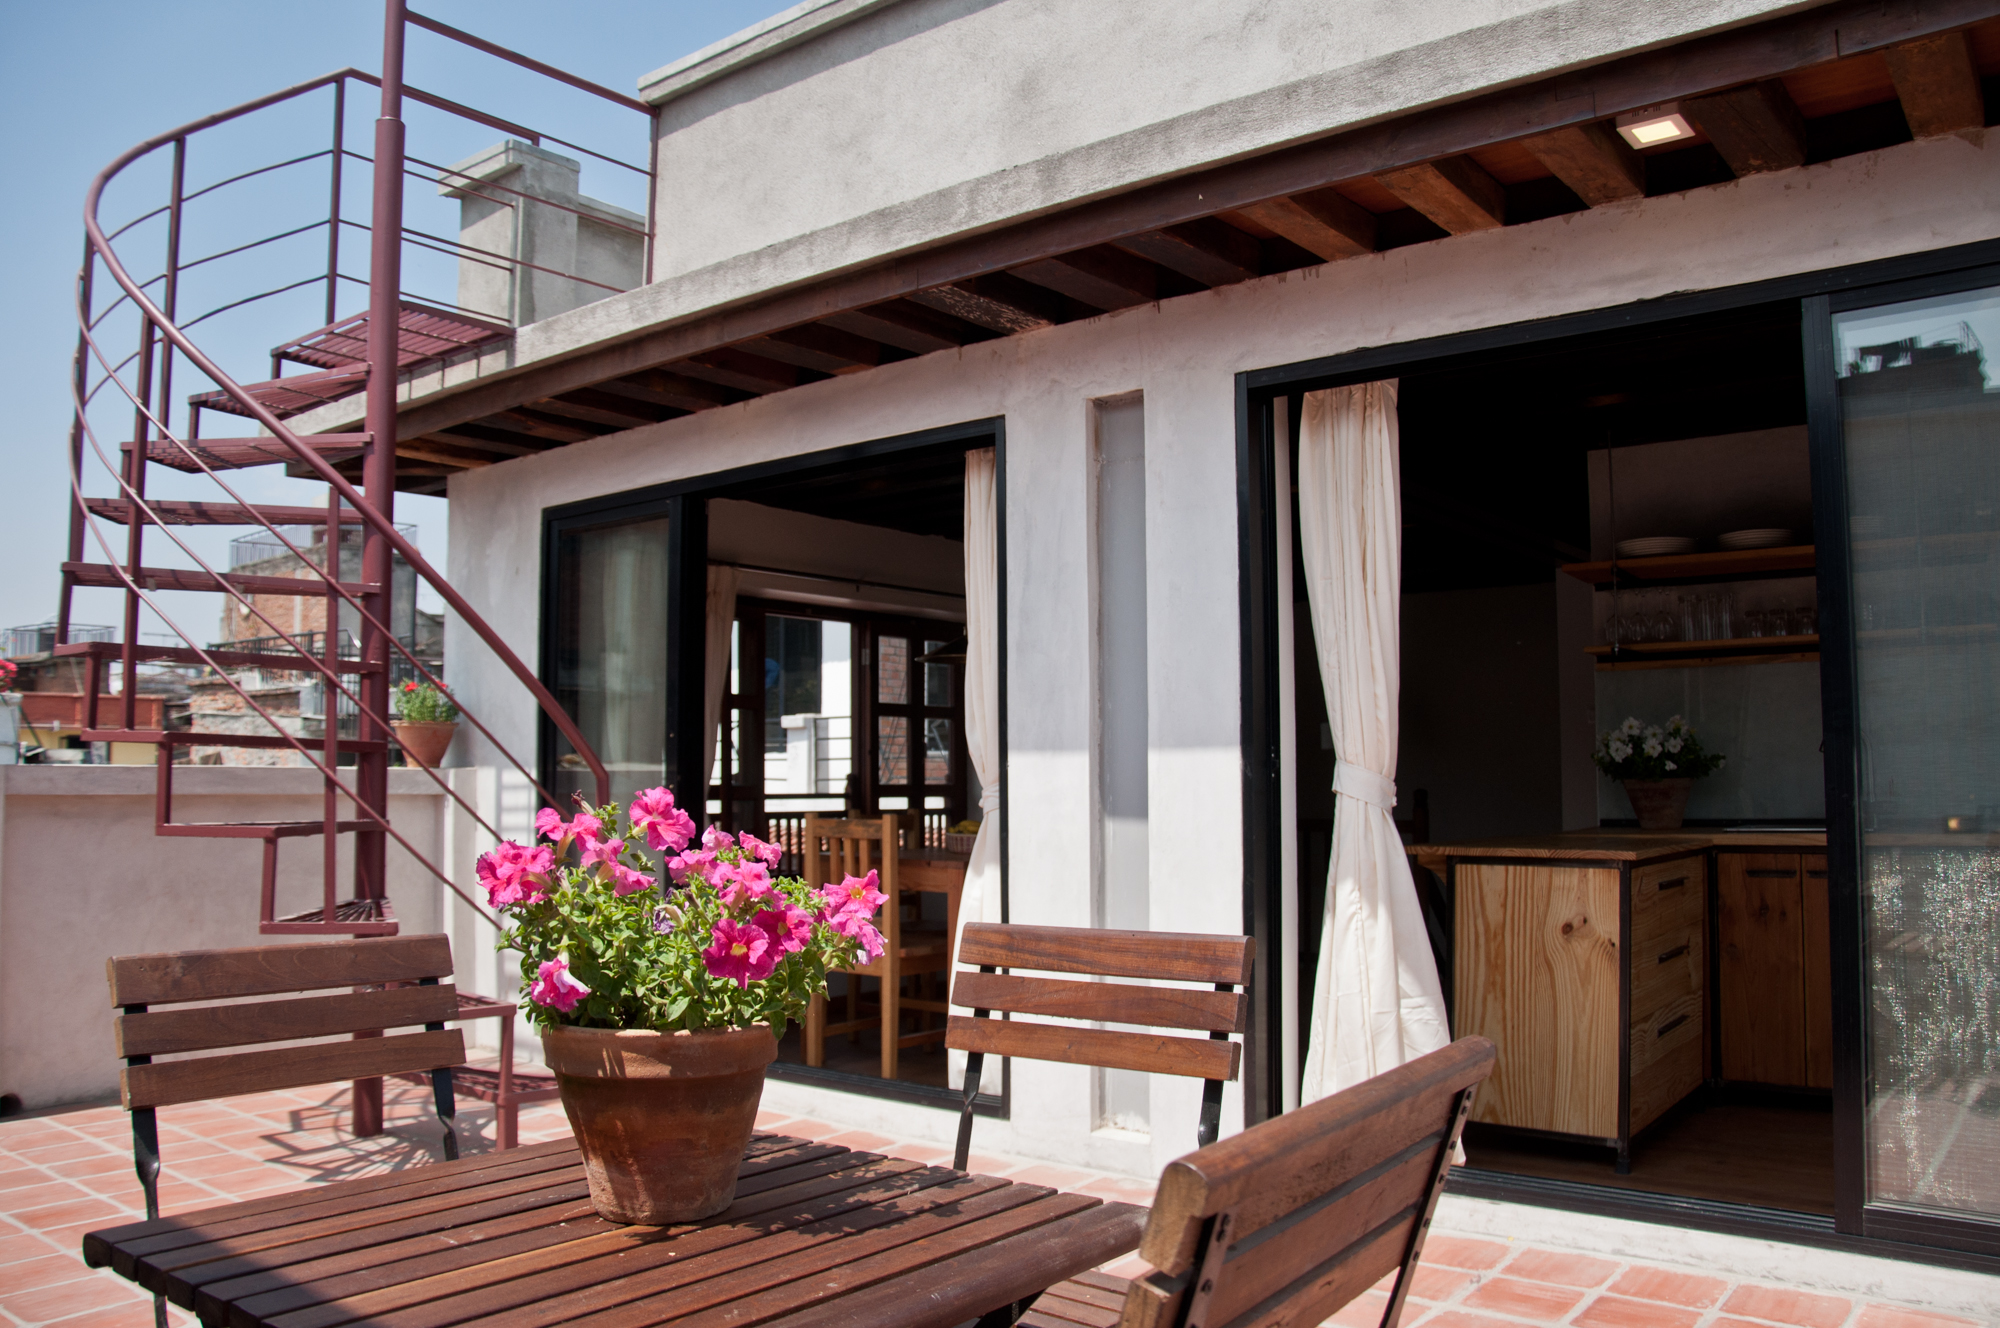 Private roof terrace, directly attached to the kitchen/ dining room.